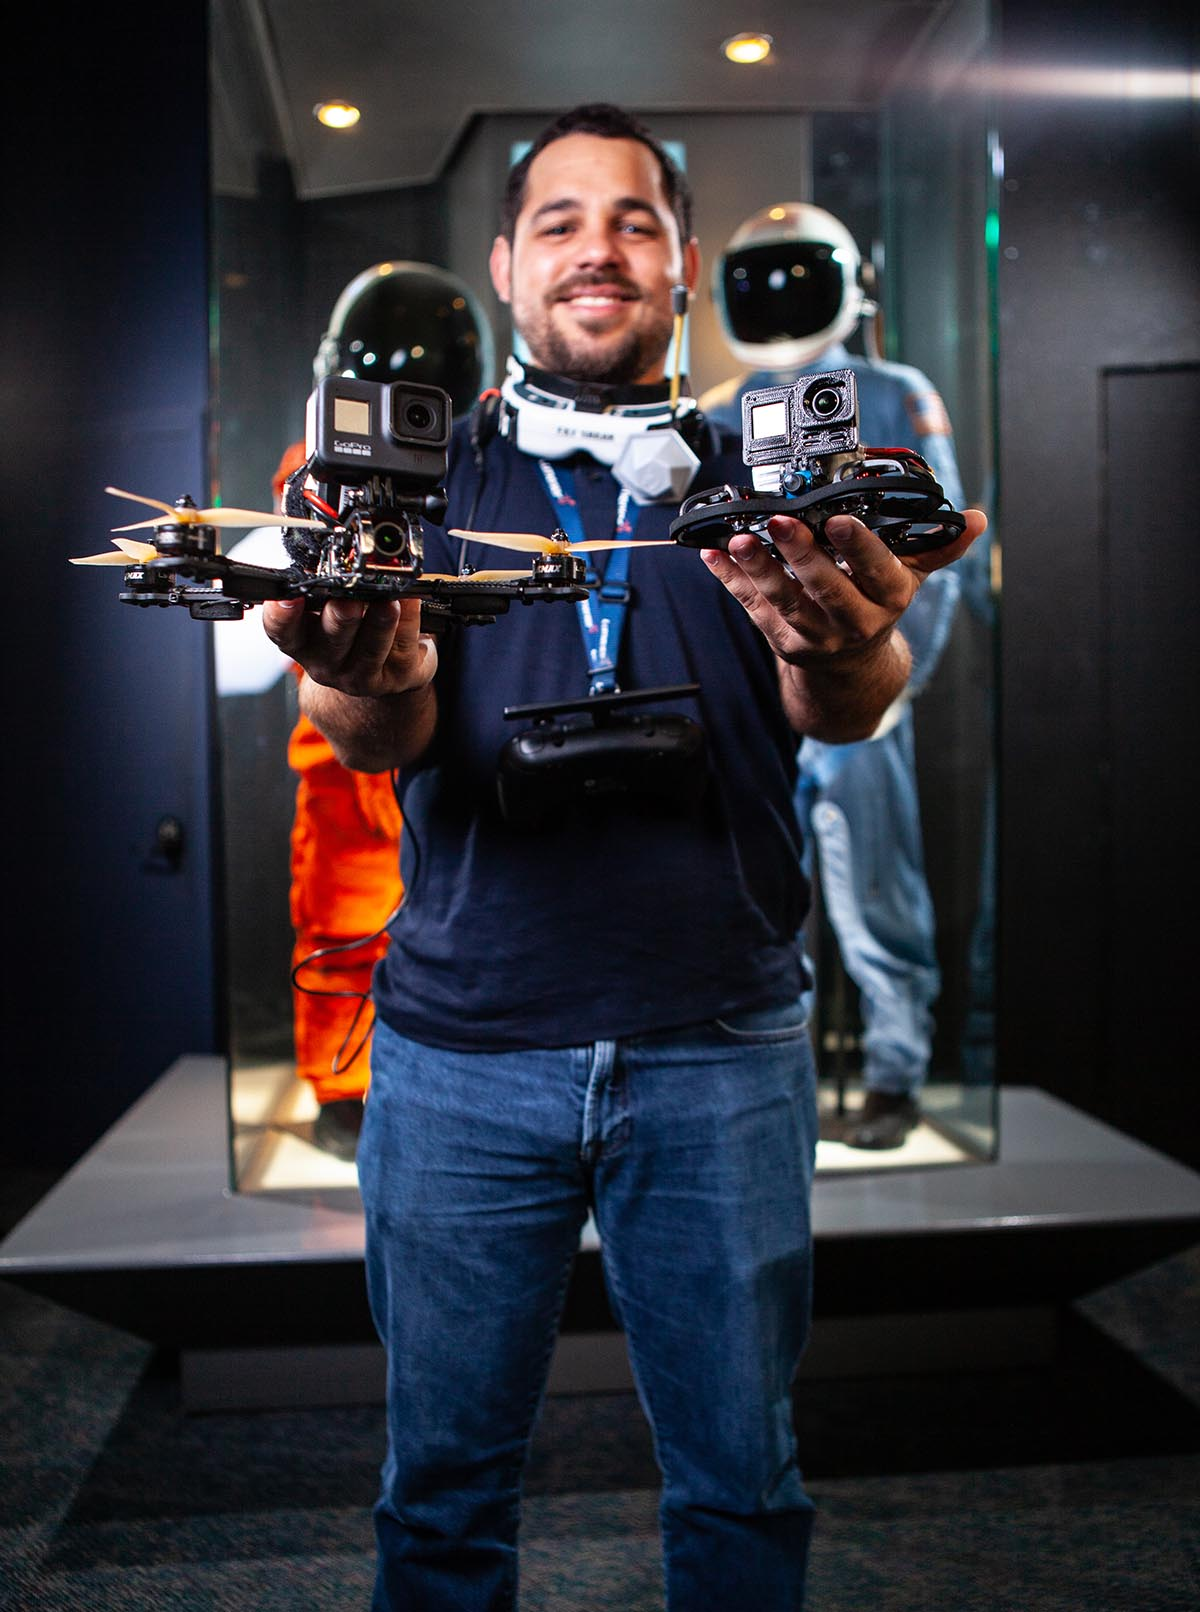 Space Center Houston Debuts a New Drone Video